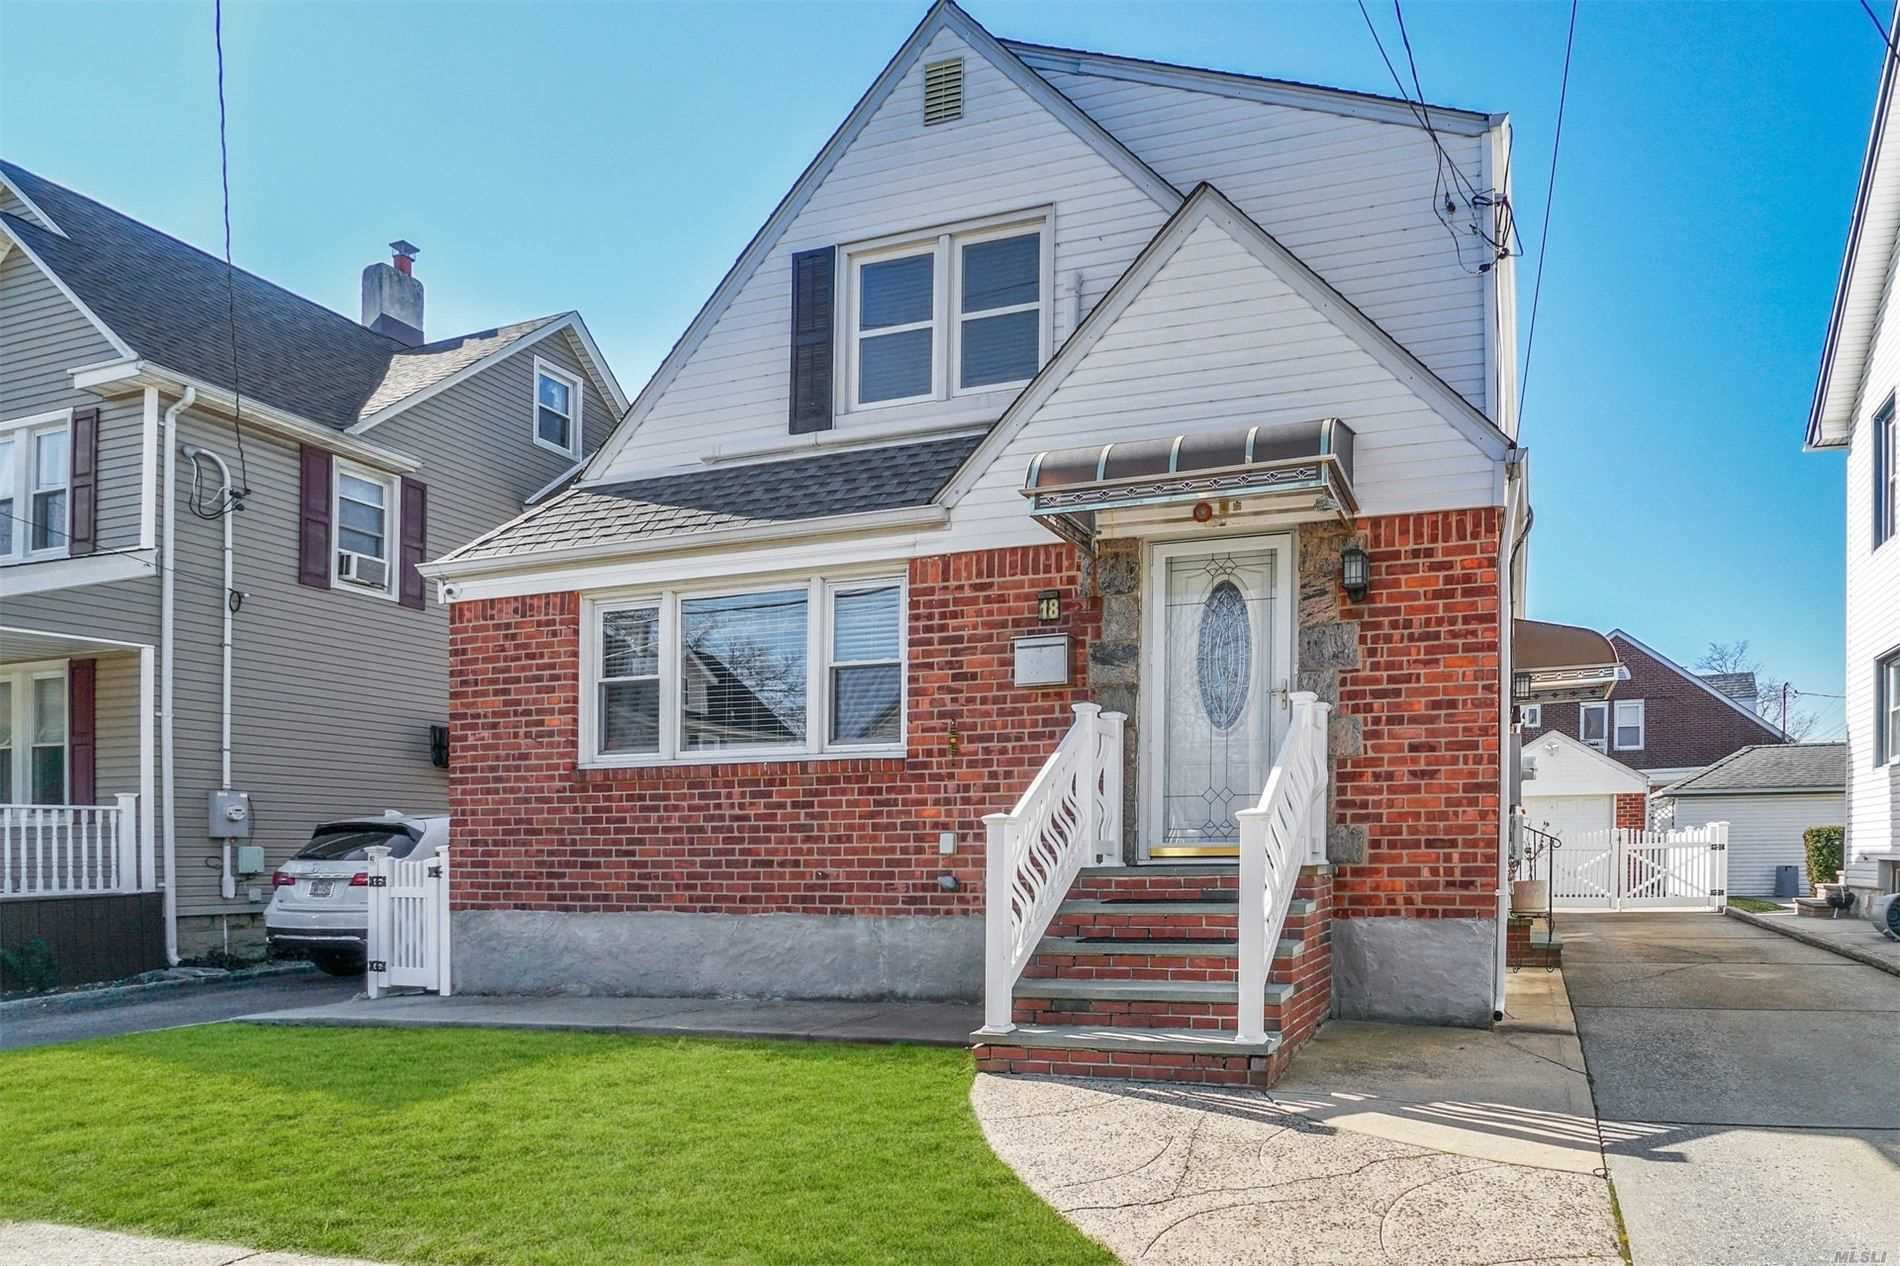 18 Flower Avenue, Floral Park, NY 11001 - MLS#: 3199572